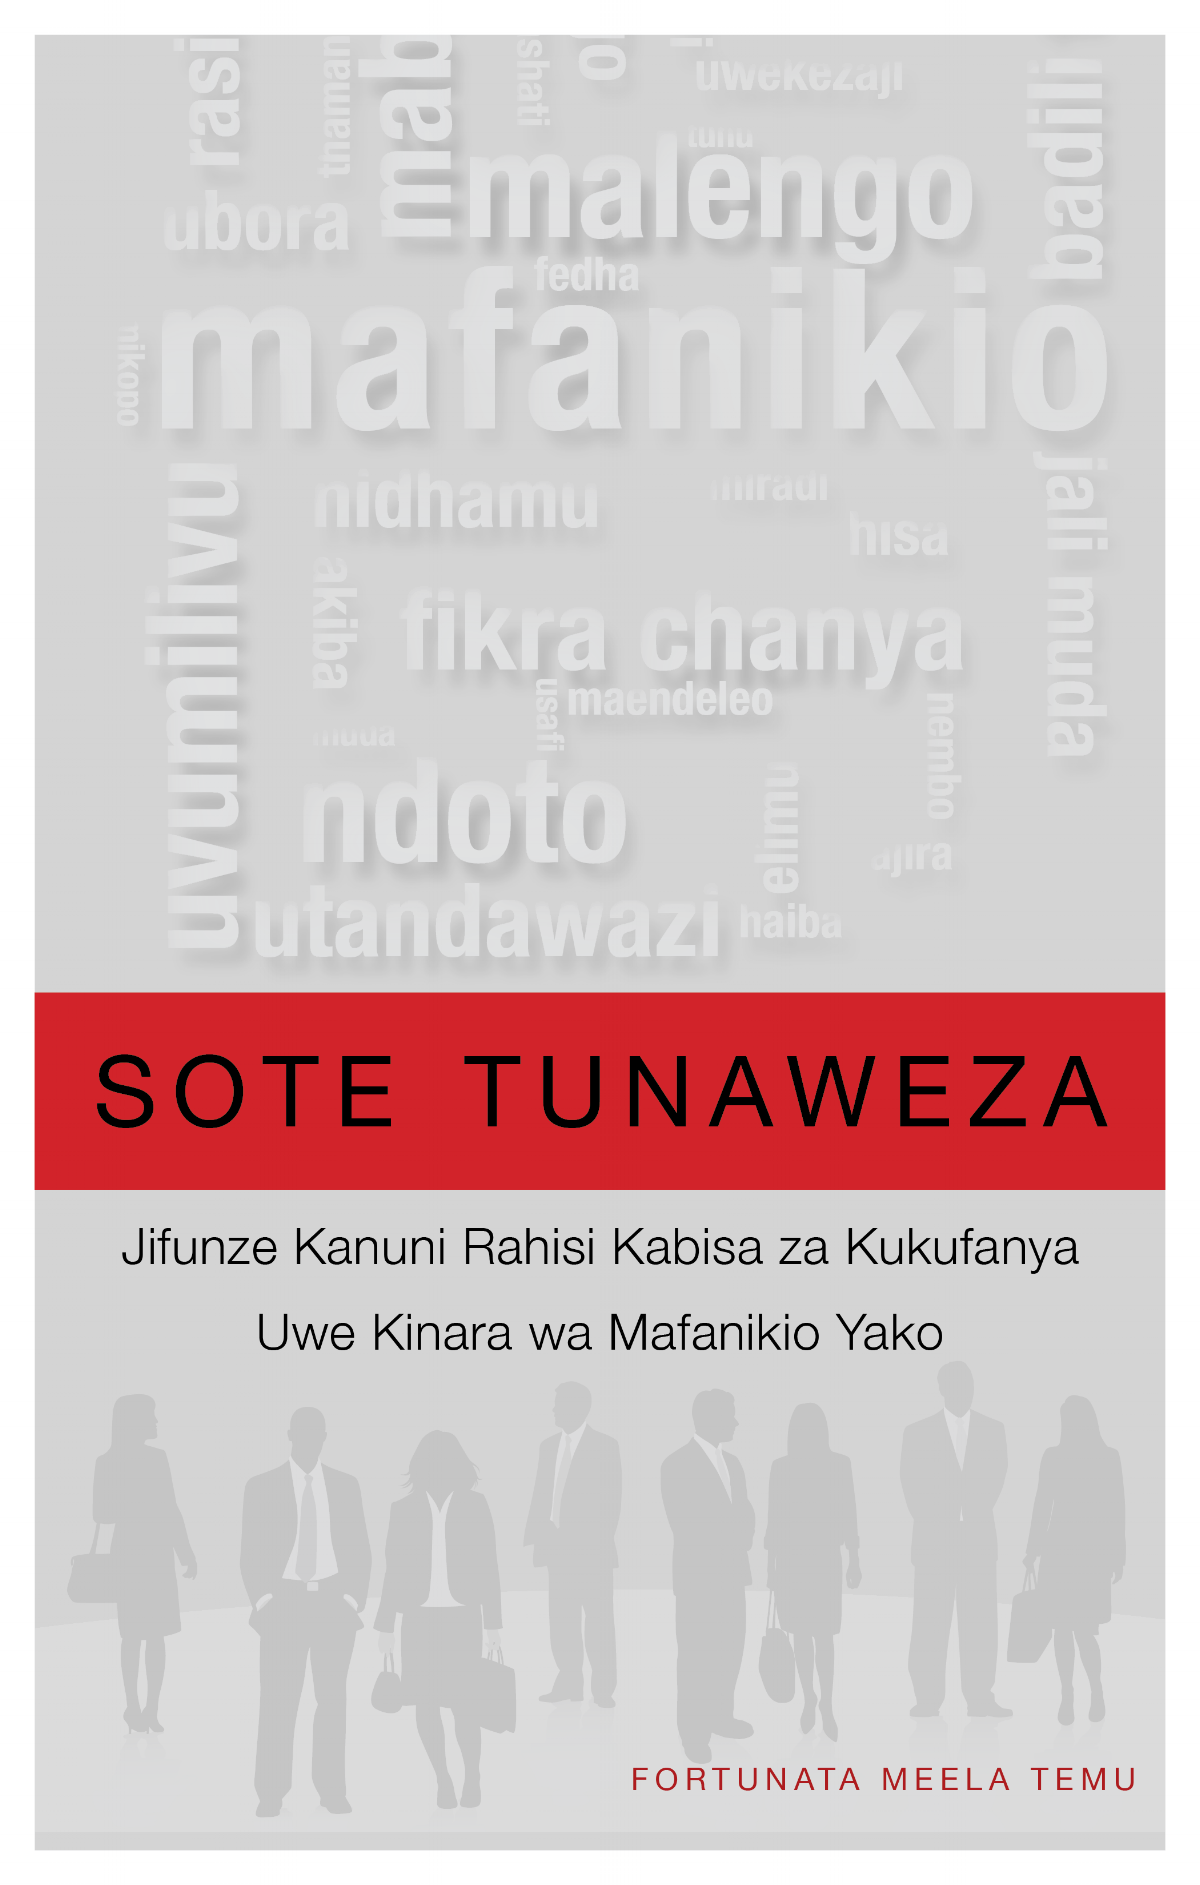 """- """"Sote Tunaweza"""" which simply means """"We Can Do It! is a must-read book for anyone who understands the Swahili Language and would like to improve on Soft Skills, Customer Service, Time Management, Building lasting fruitful relationships, Investing for the future and Cross-cultural competencies development. The writer has profiled highly successful business men and women from across the globe and within the Africa region including Tanzania where she originates from."""